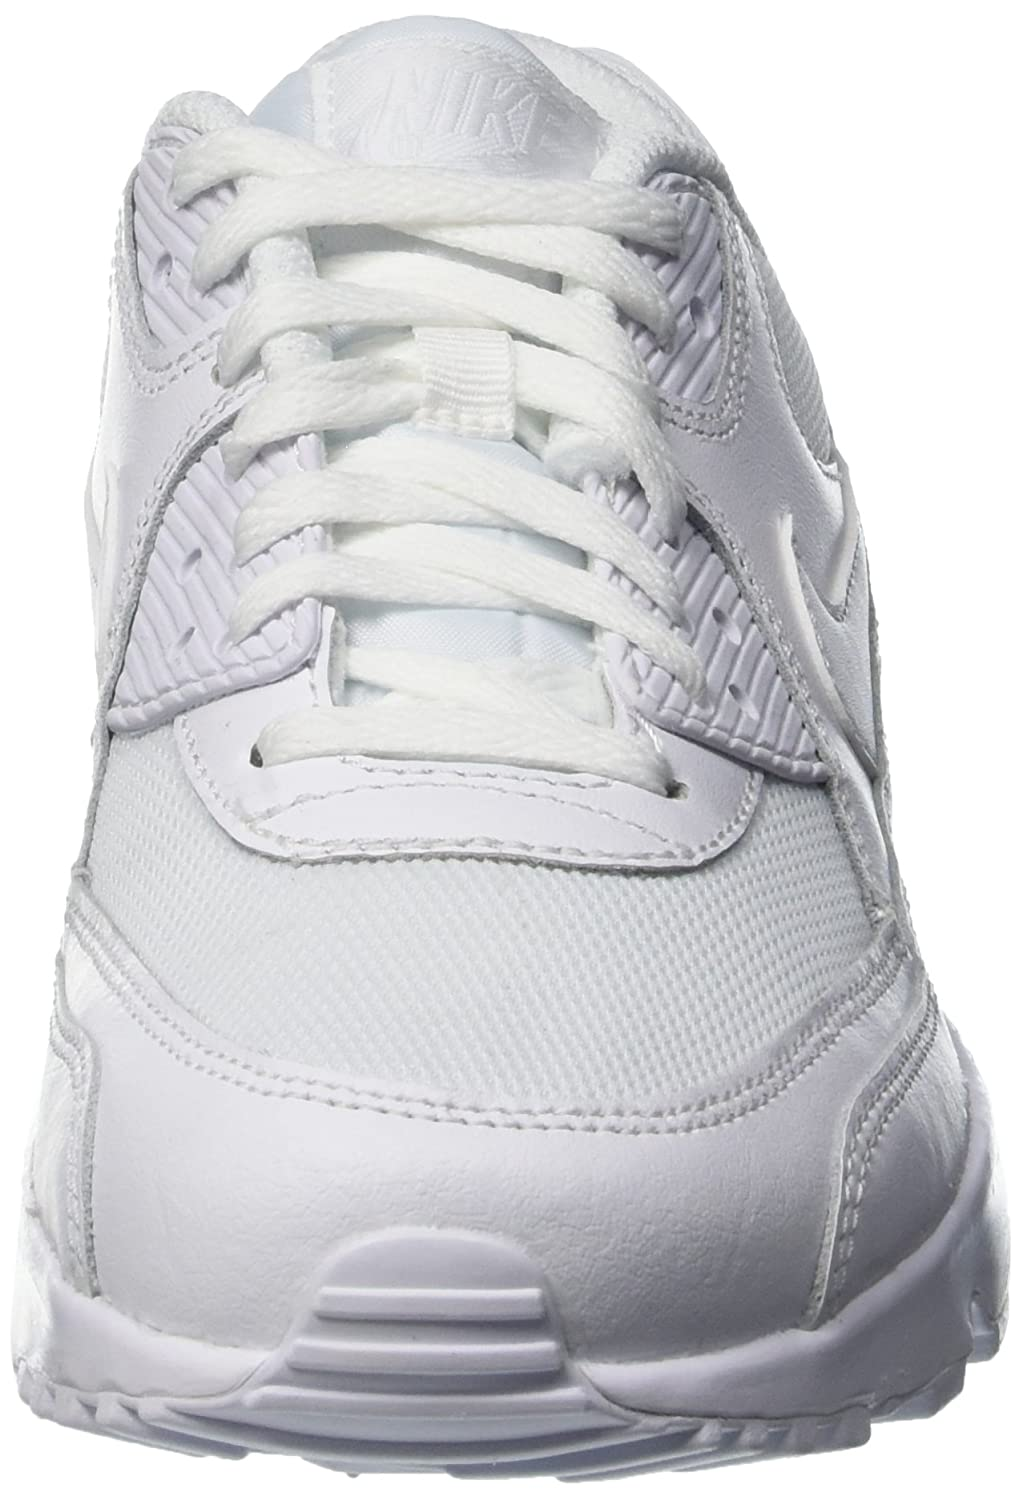 Amazon.com: Nike Mens Air Max 90 Mesh Grade School Athletic & Sneakers White: Shoes